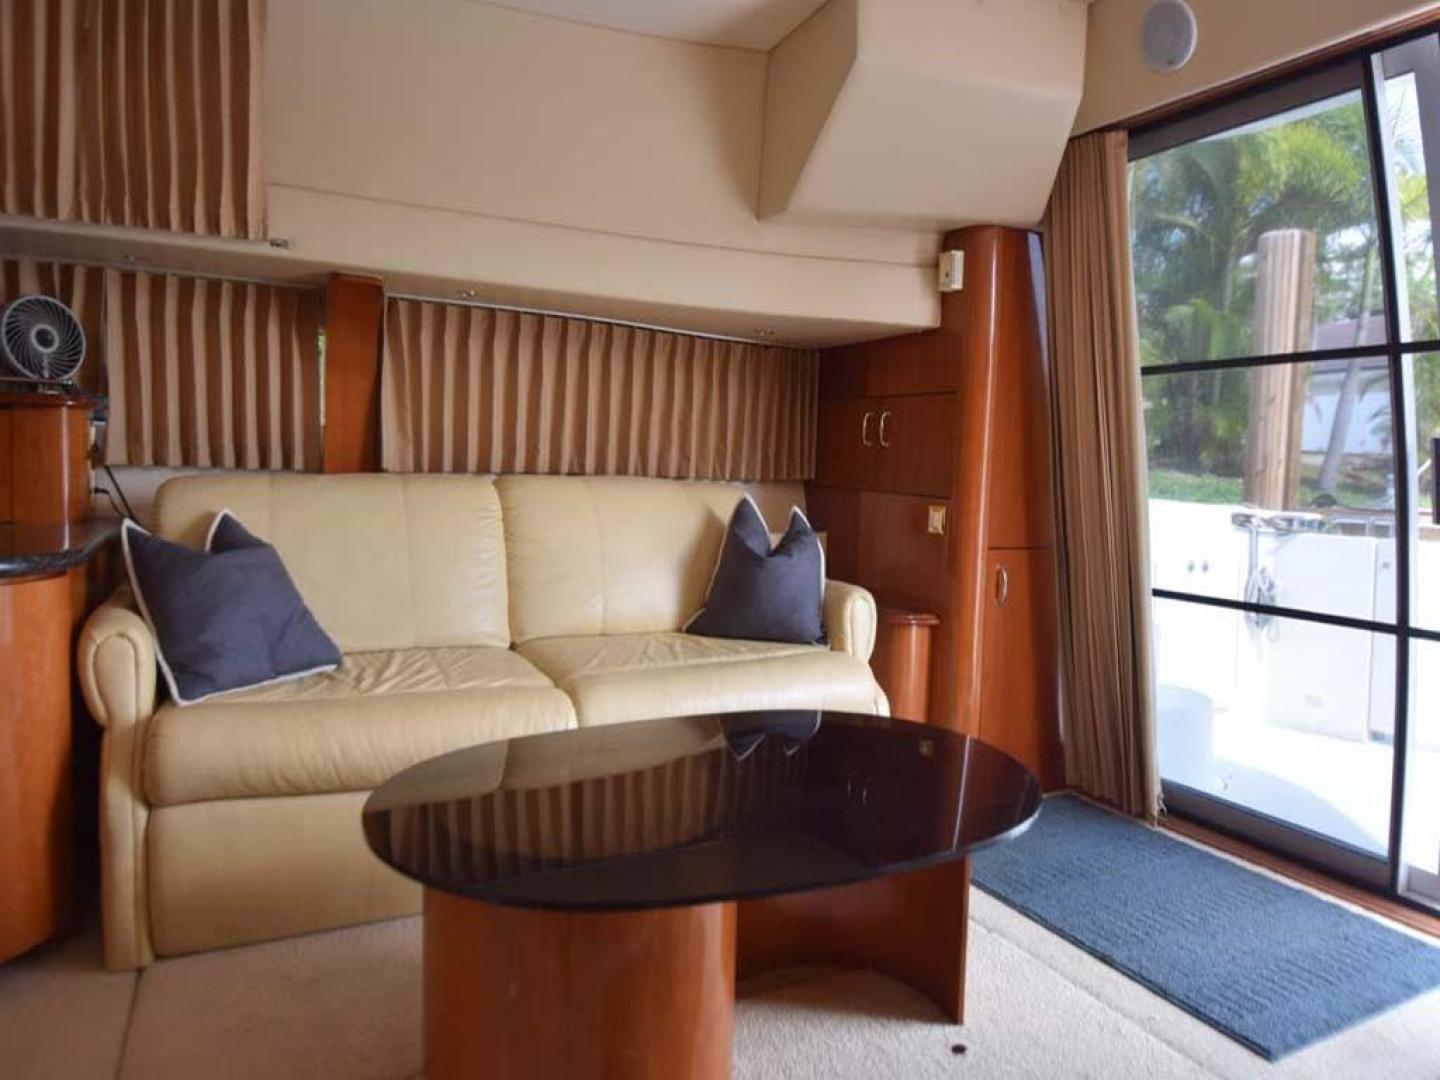 Carver-42 Mariner 2004-Livin Life Fort Lauderdale-Florida-United States-913172 | Thumbnail